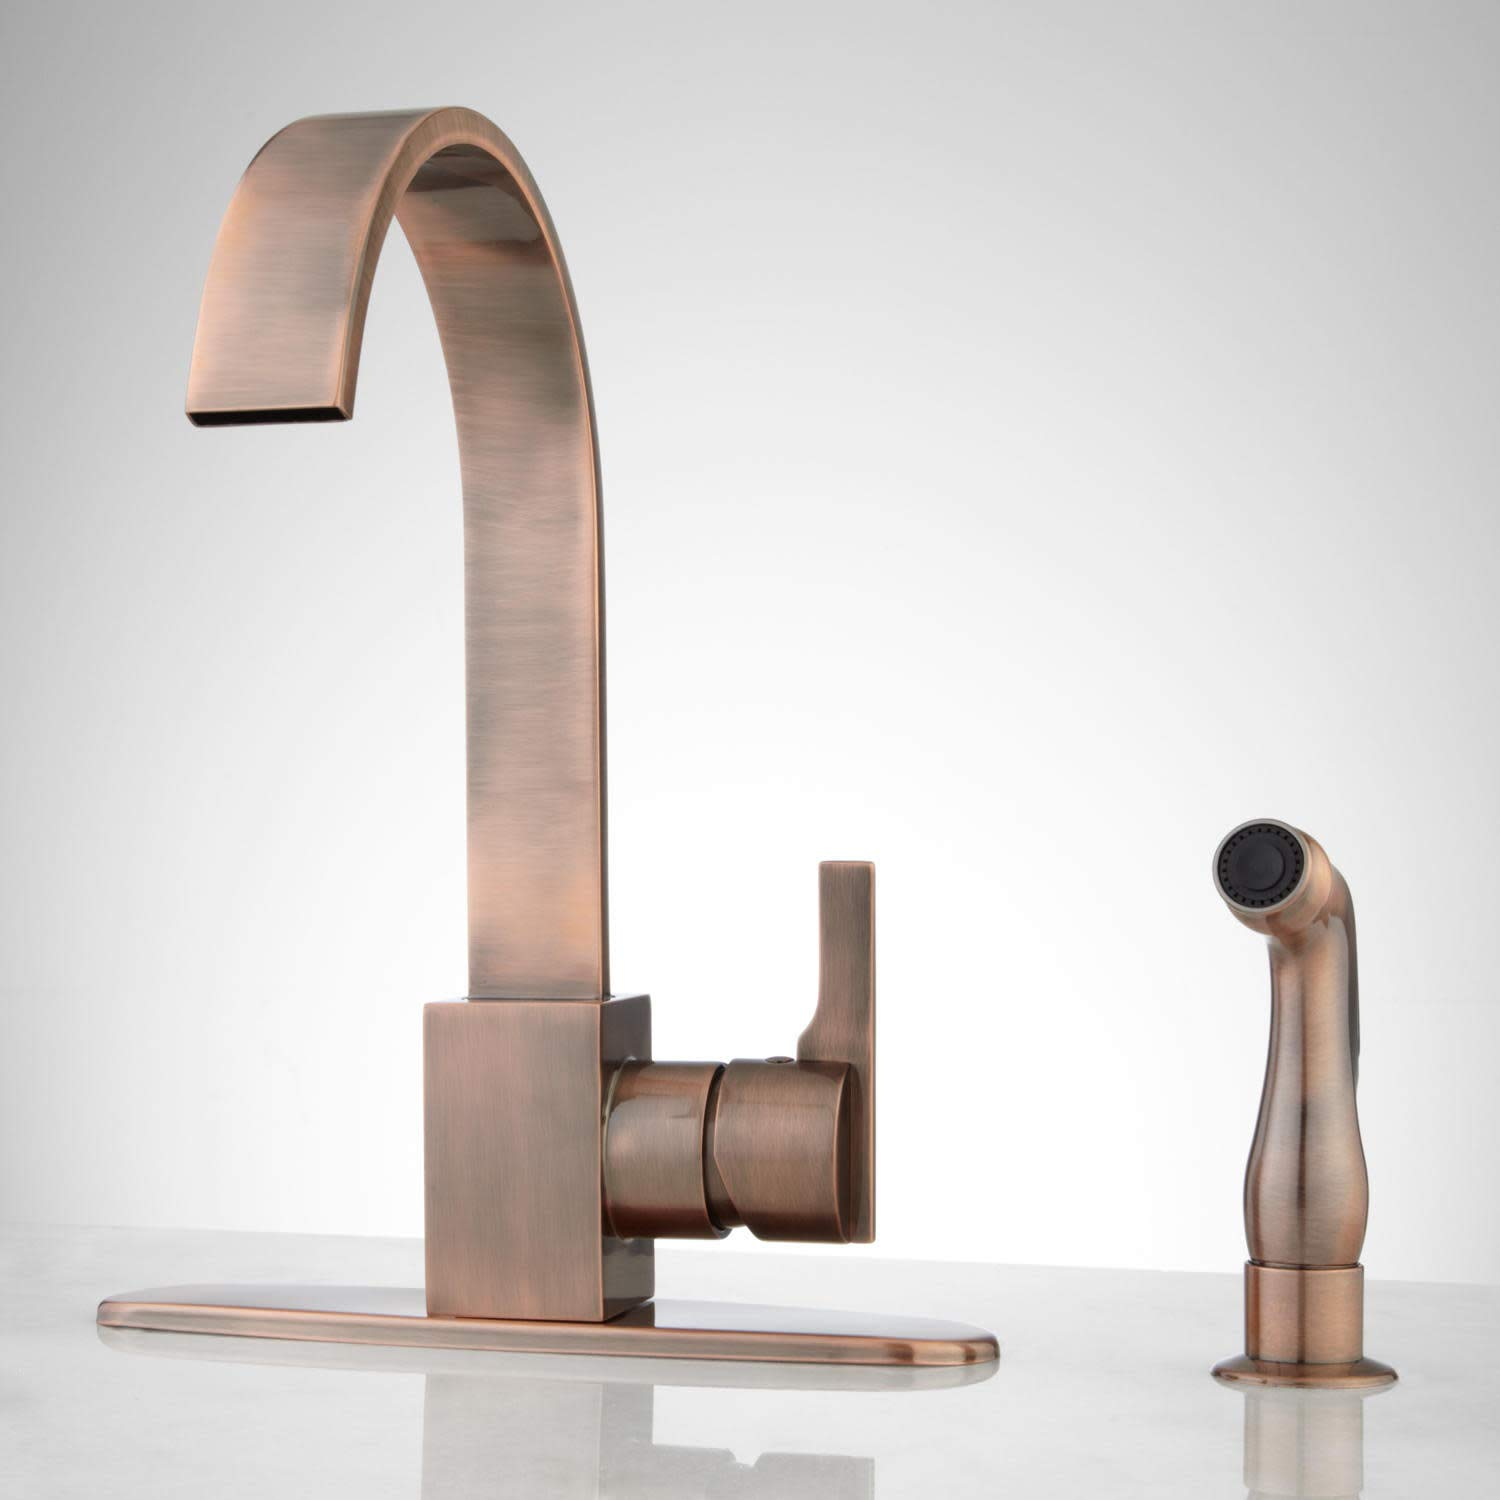 Signature Hardware 368361 Aster 1.8 GPM Kitchen Faucet with Escutcheon Plate and Side Spray